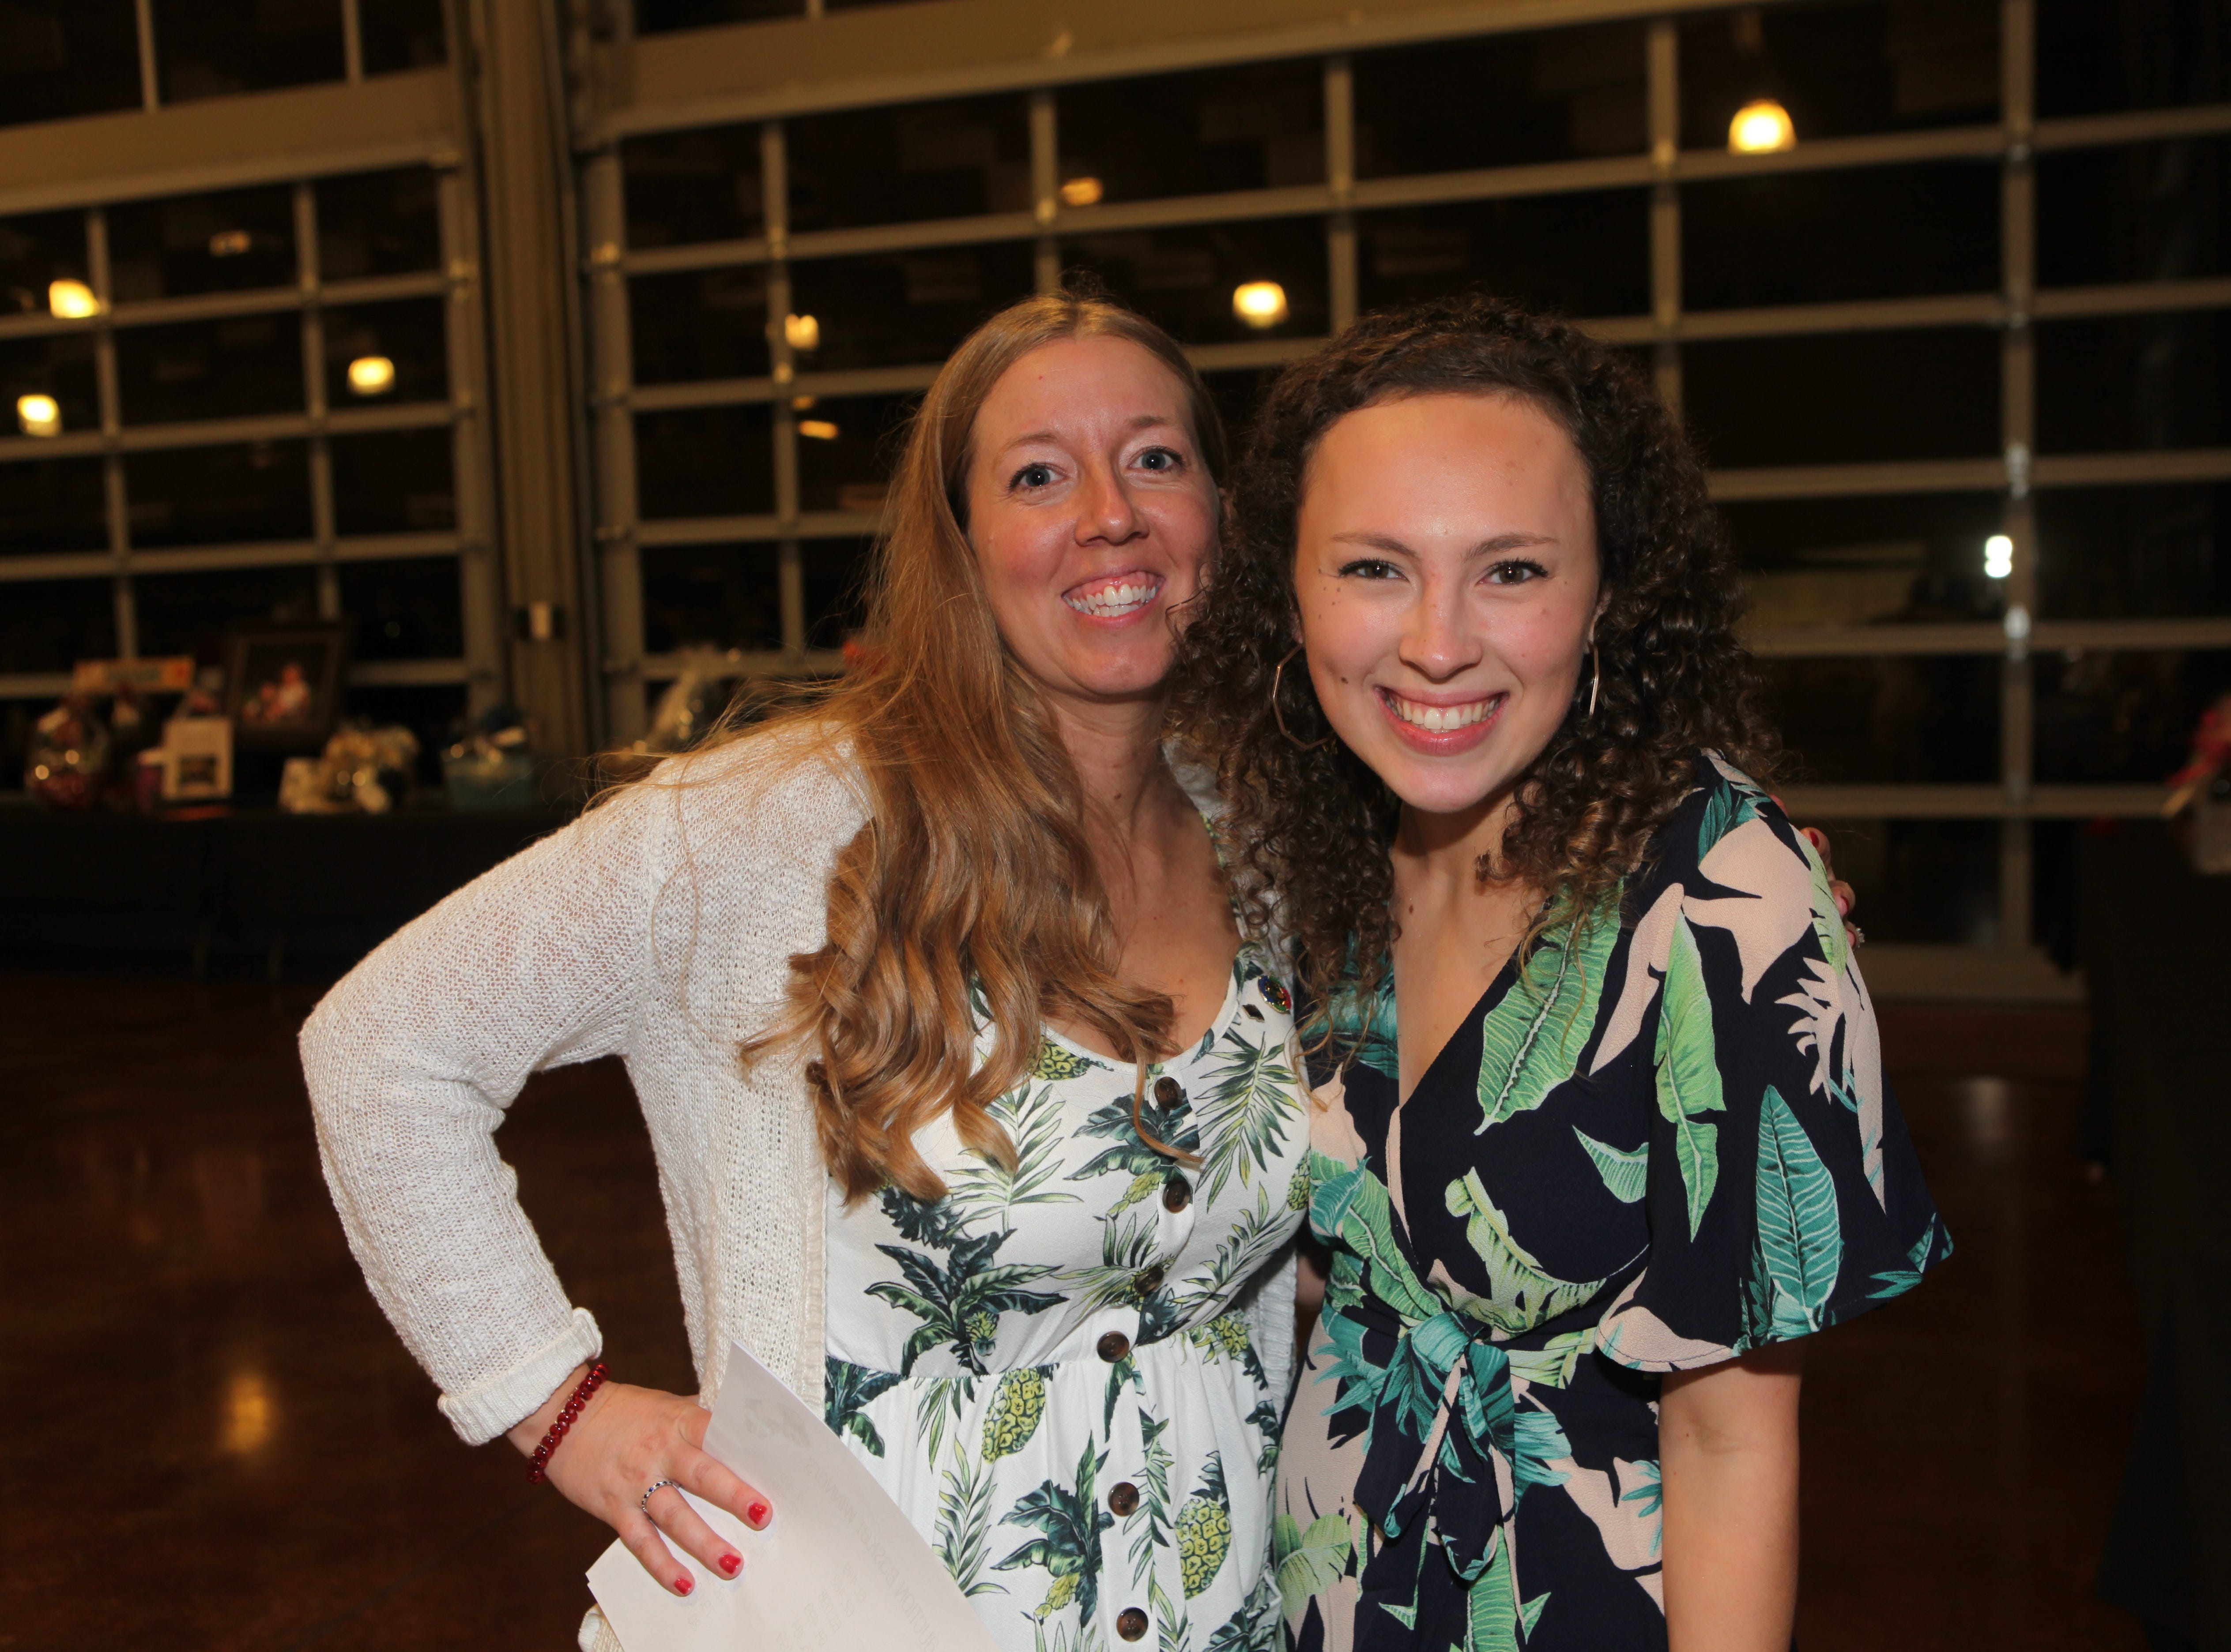 Fort Campbell Spouses Club President Colleen Murphy and Brigette Burr at the Very Important Charity Event on March 9, 2019.